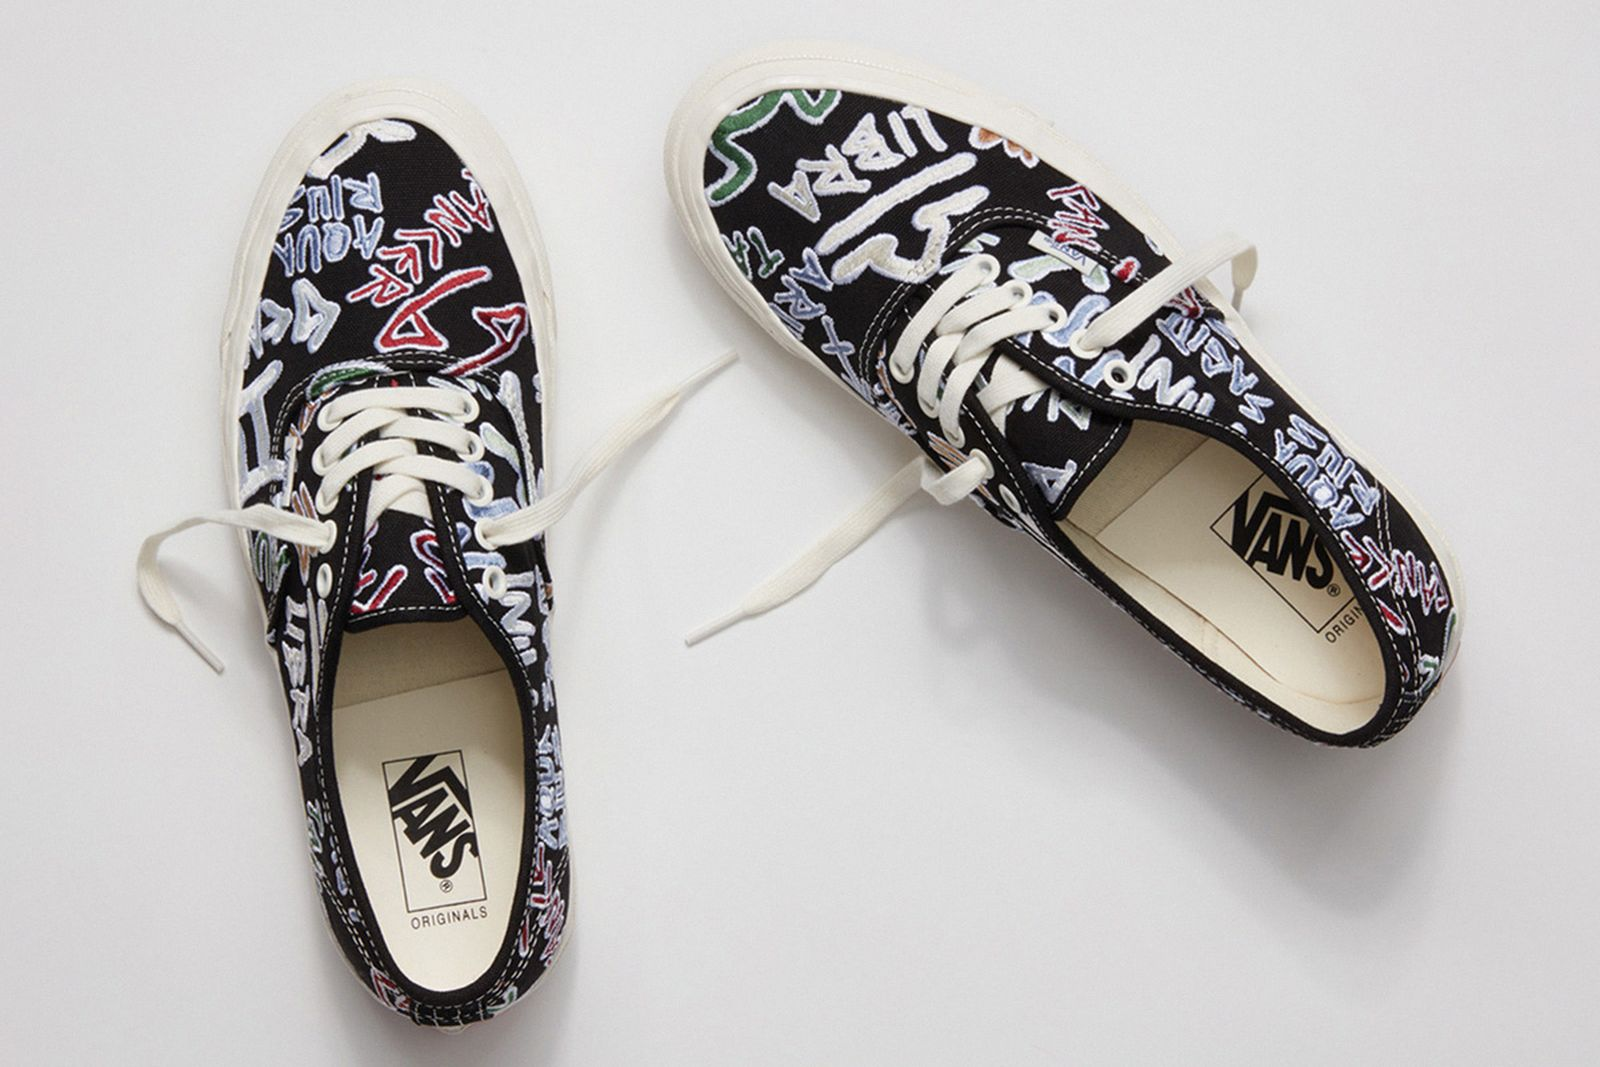 vans-og-authentic-lx-zodiac-release-date-price-07